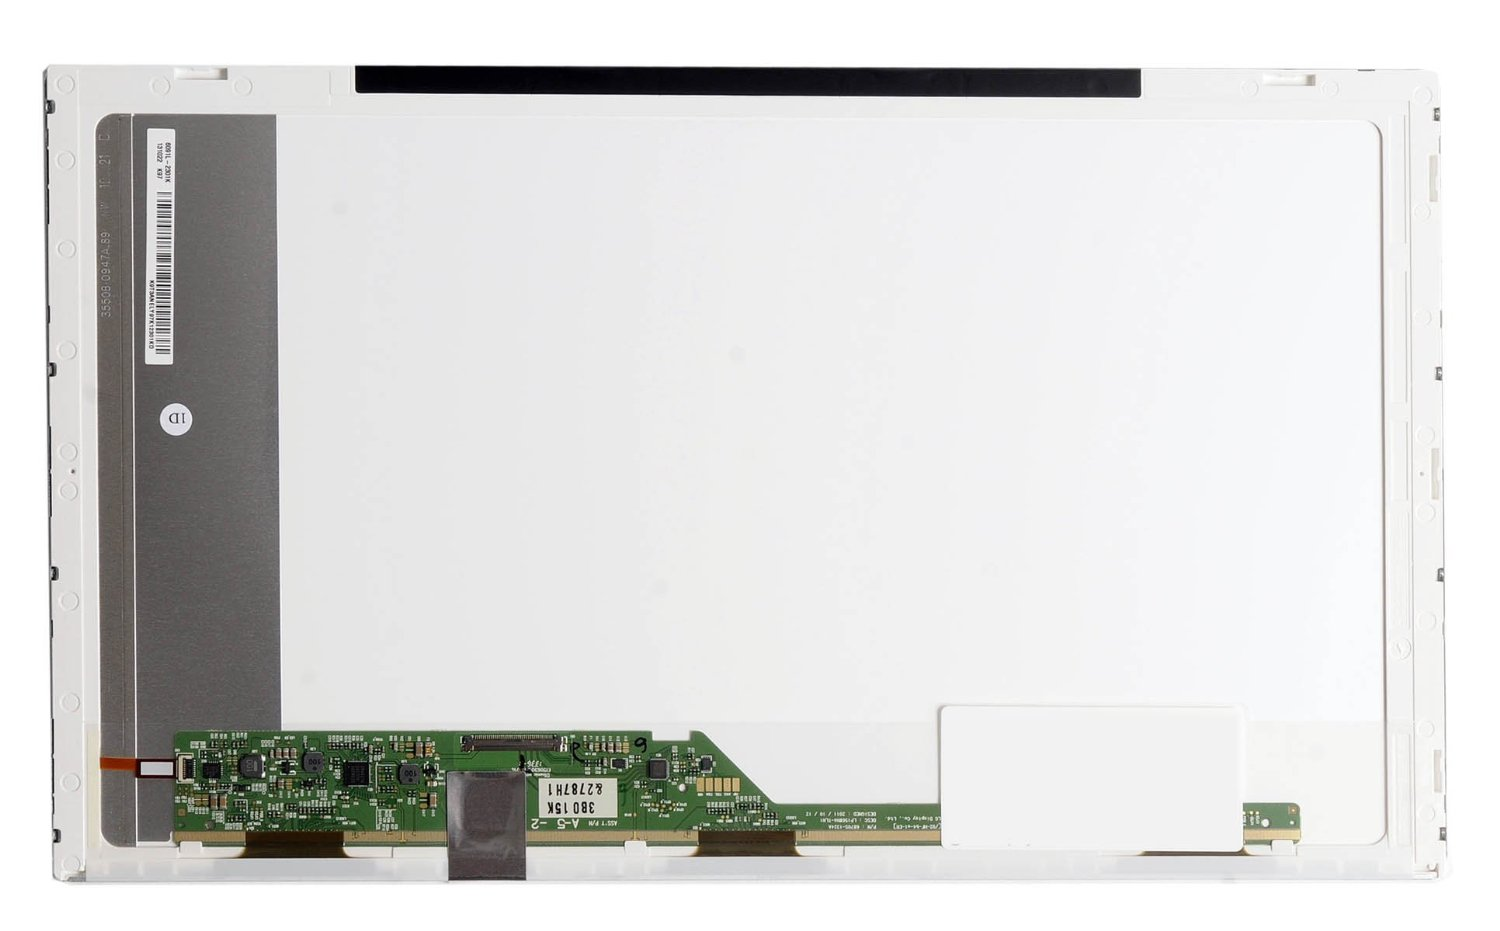 LP156WH2 (TL)(AC) For LG NEW 15.6 HD LED LCD Laptop Replacement Screen/Display TLAC lp156wh4 tl n1 for lg new 15 6 hd led lcd laptop screen display lp156wh4 tln1